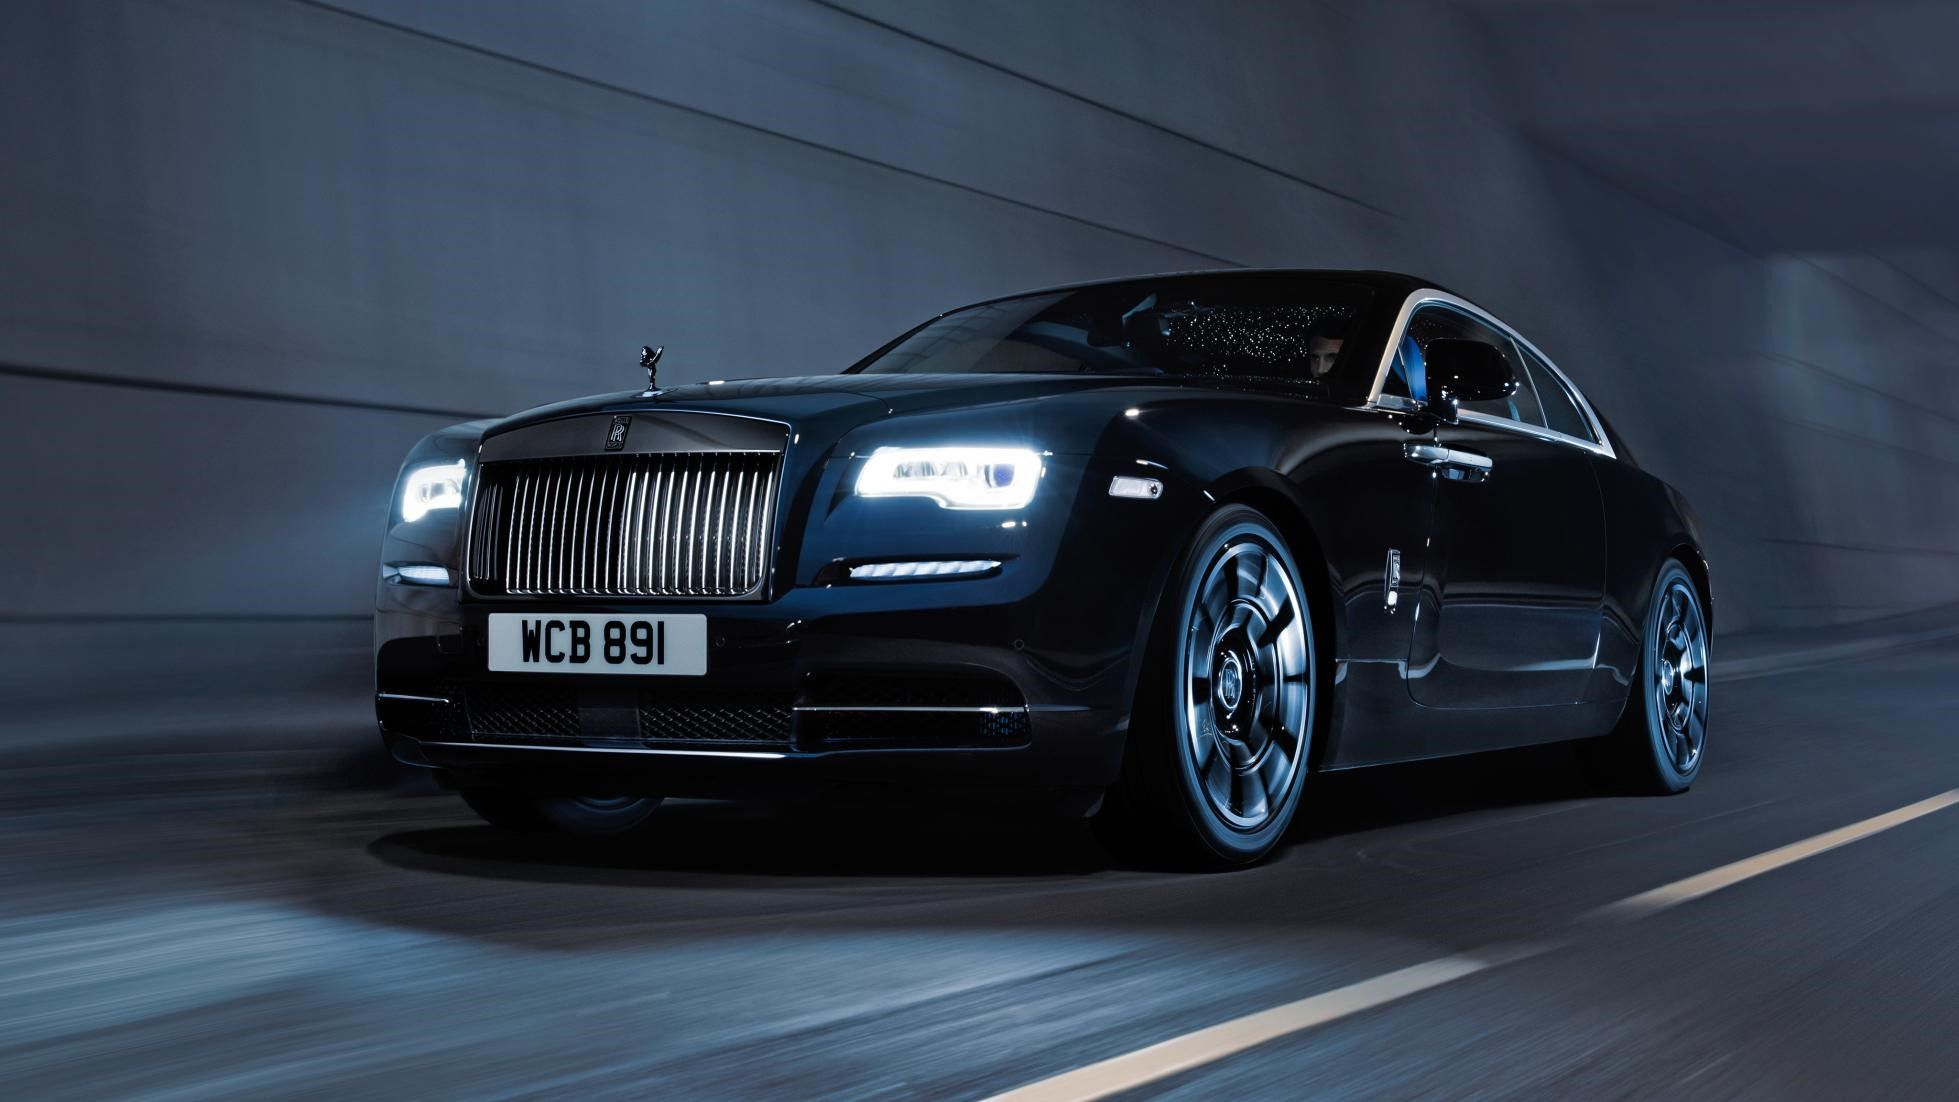 Forex Rolls Royce Releases Powerful Black Badge Models British Car